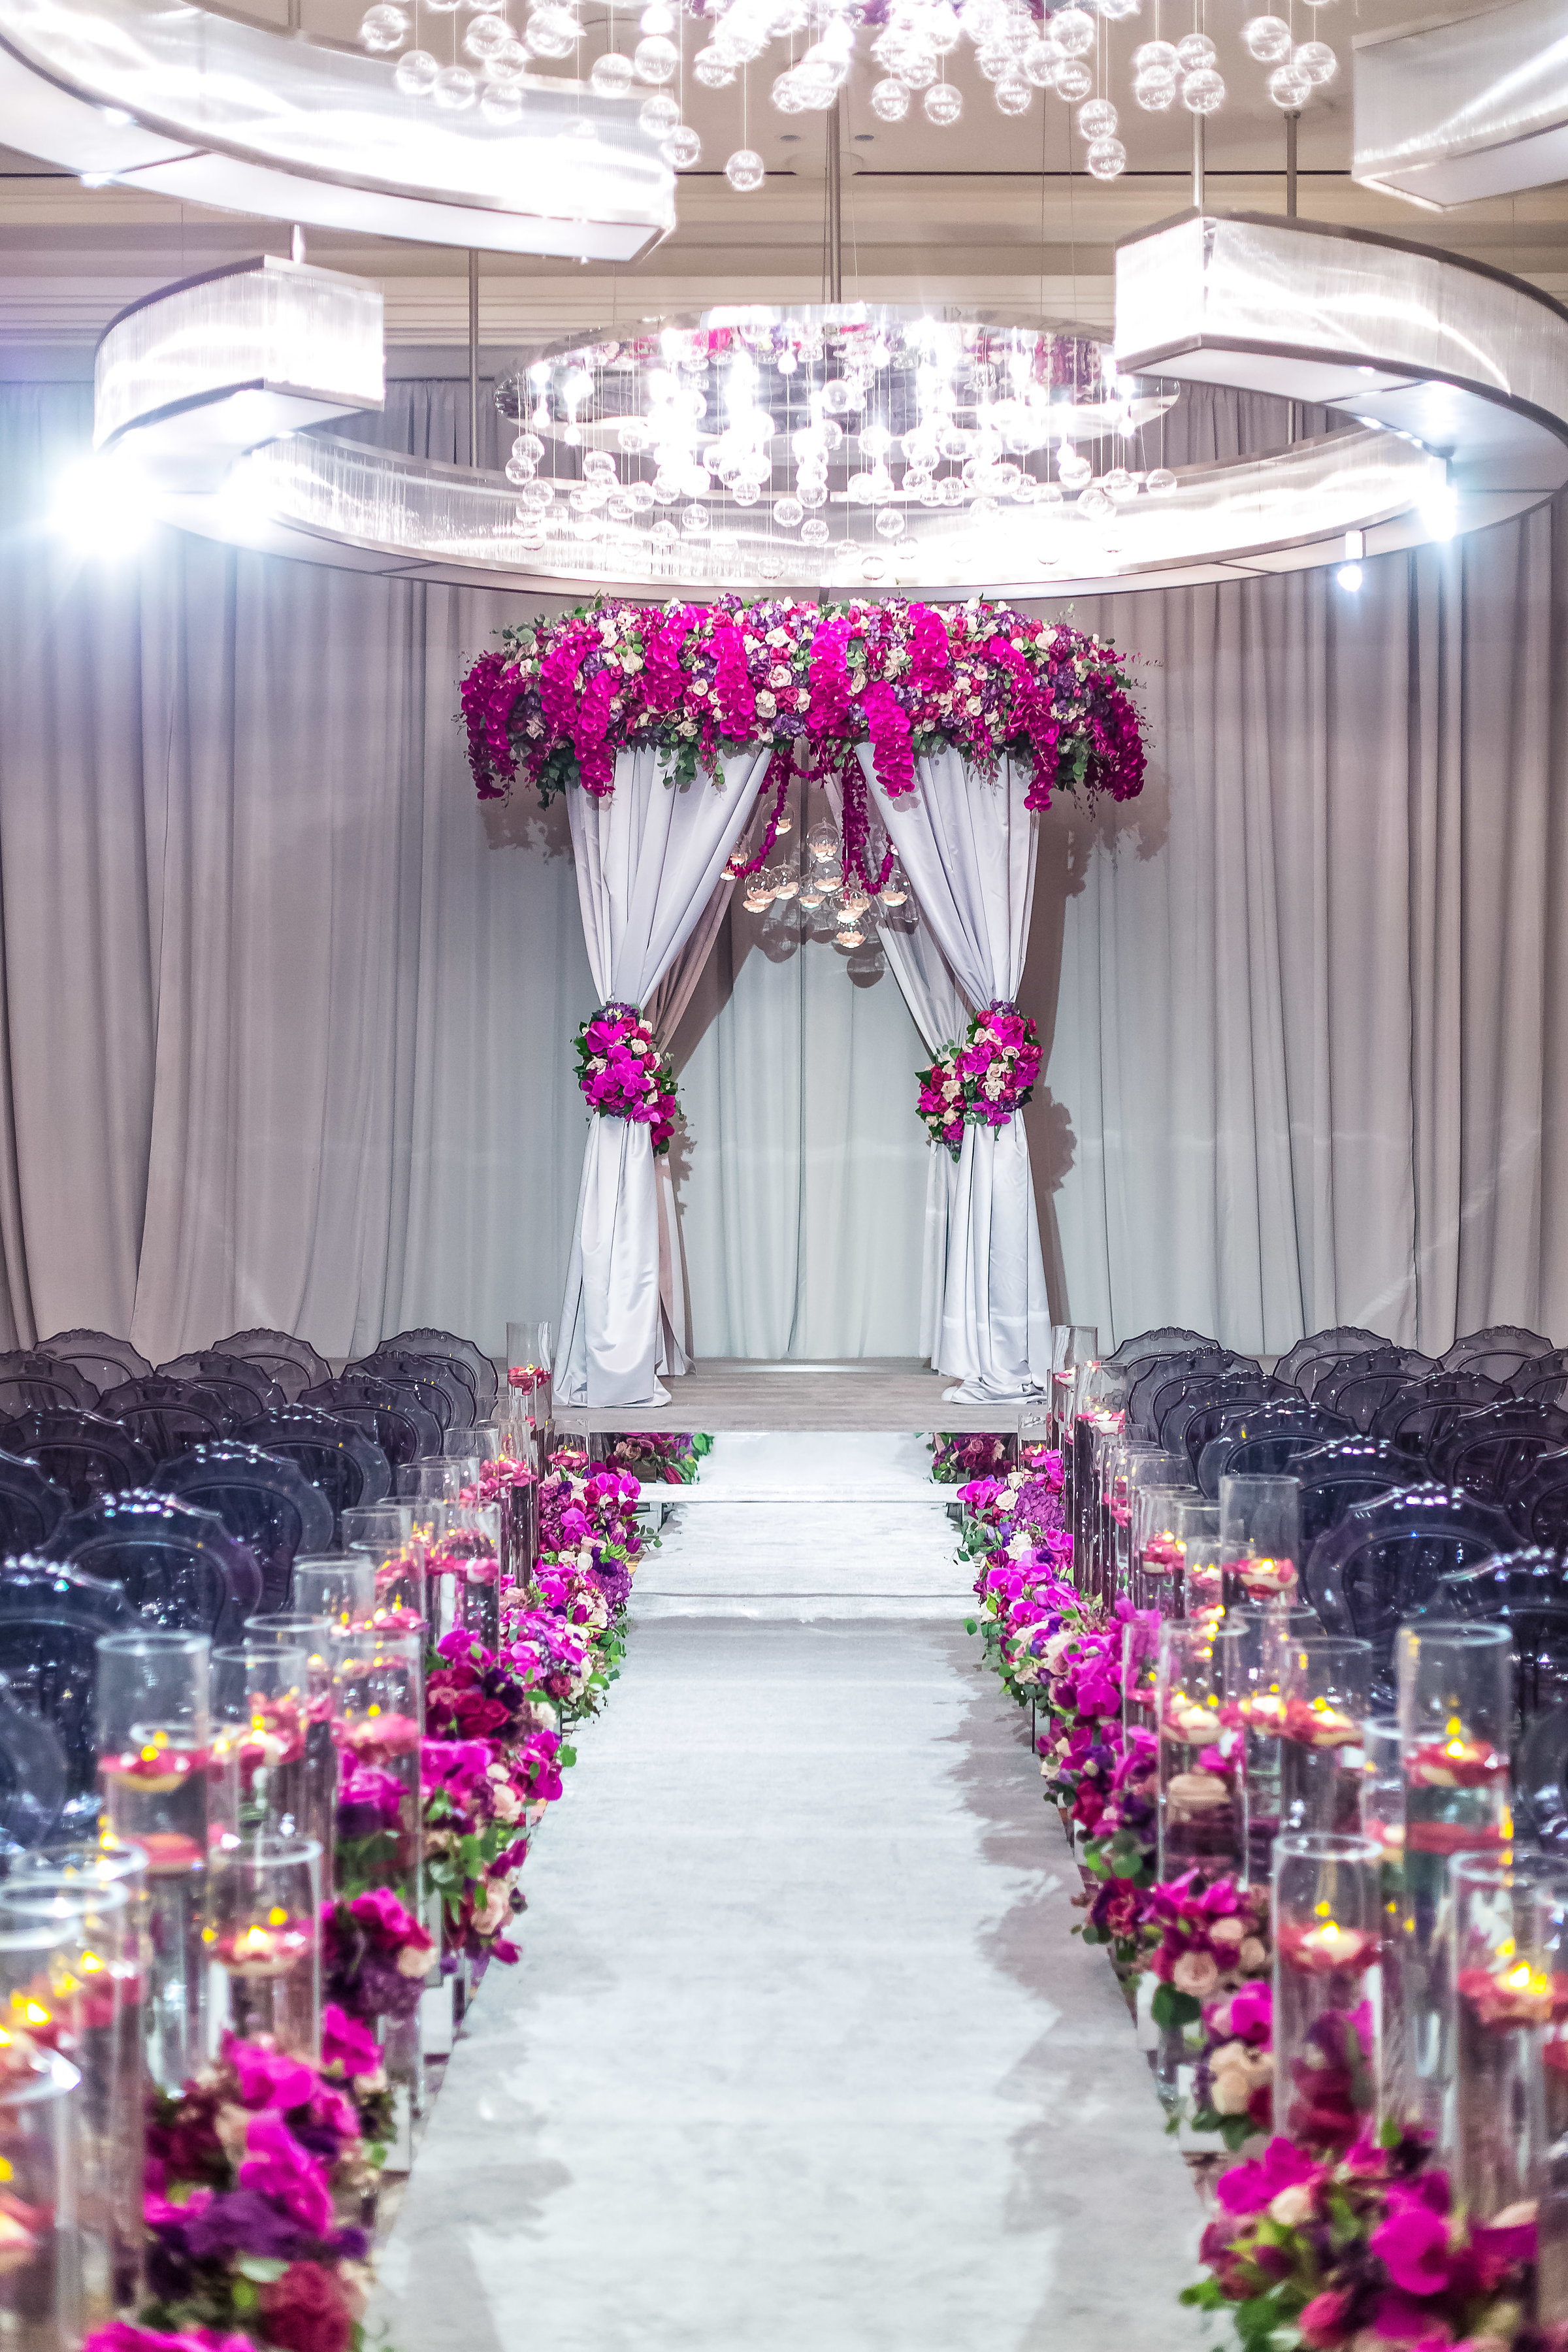 Fuchsia orchids and grey drapes created a beautiful wedding ceremony in Las Vegas.  As seen in Inside Weddings.Wedding Planner: Andrea Eppolito Events    Photography  Brian Leahy    Videography  HOO Films    Venue & Catering:  Mandarin Oriental  / Waldorf Astoria   Floral & Decor: Destinations by Design    Lighting: LED Unplugged    Music:  DJ Breeze II    Hair & Make Up: Amelia C & Co